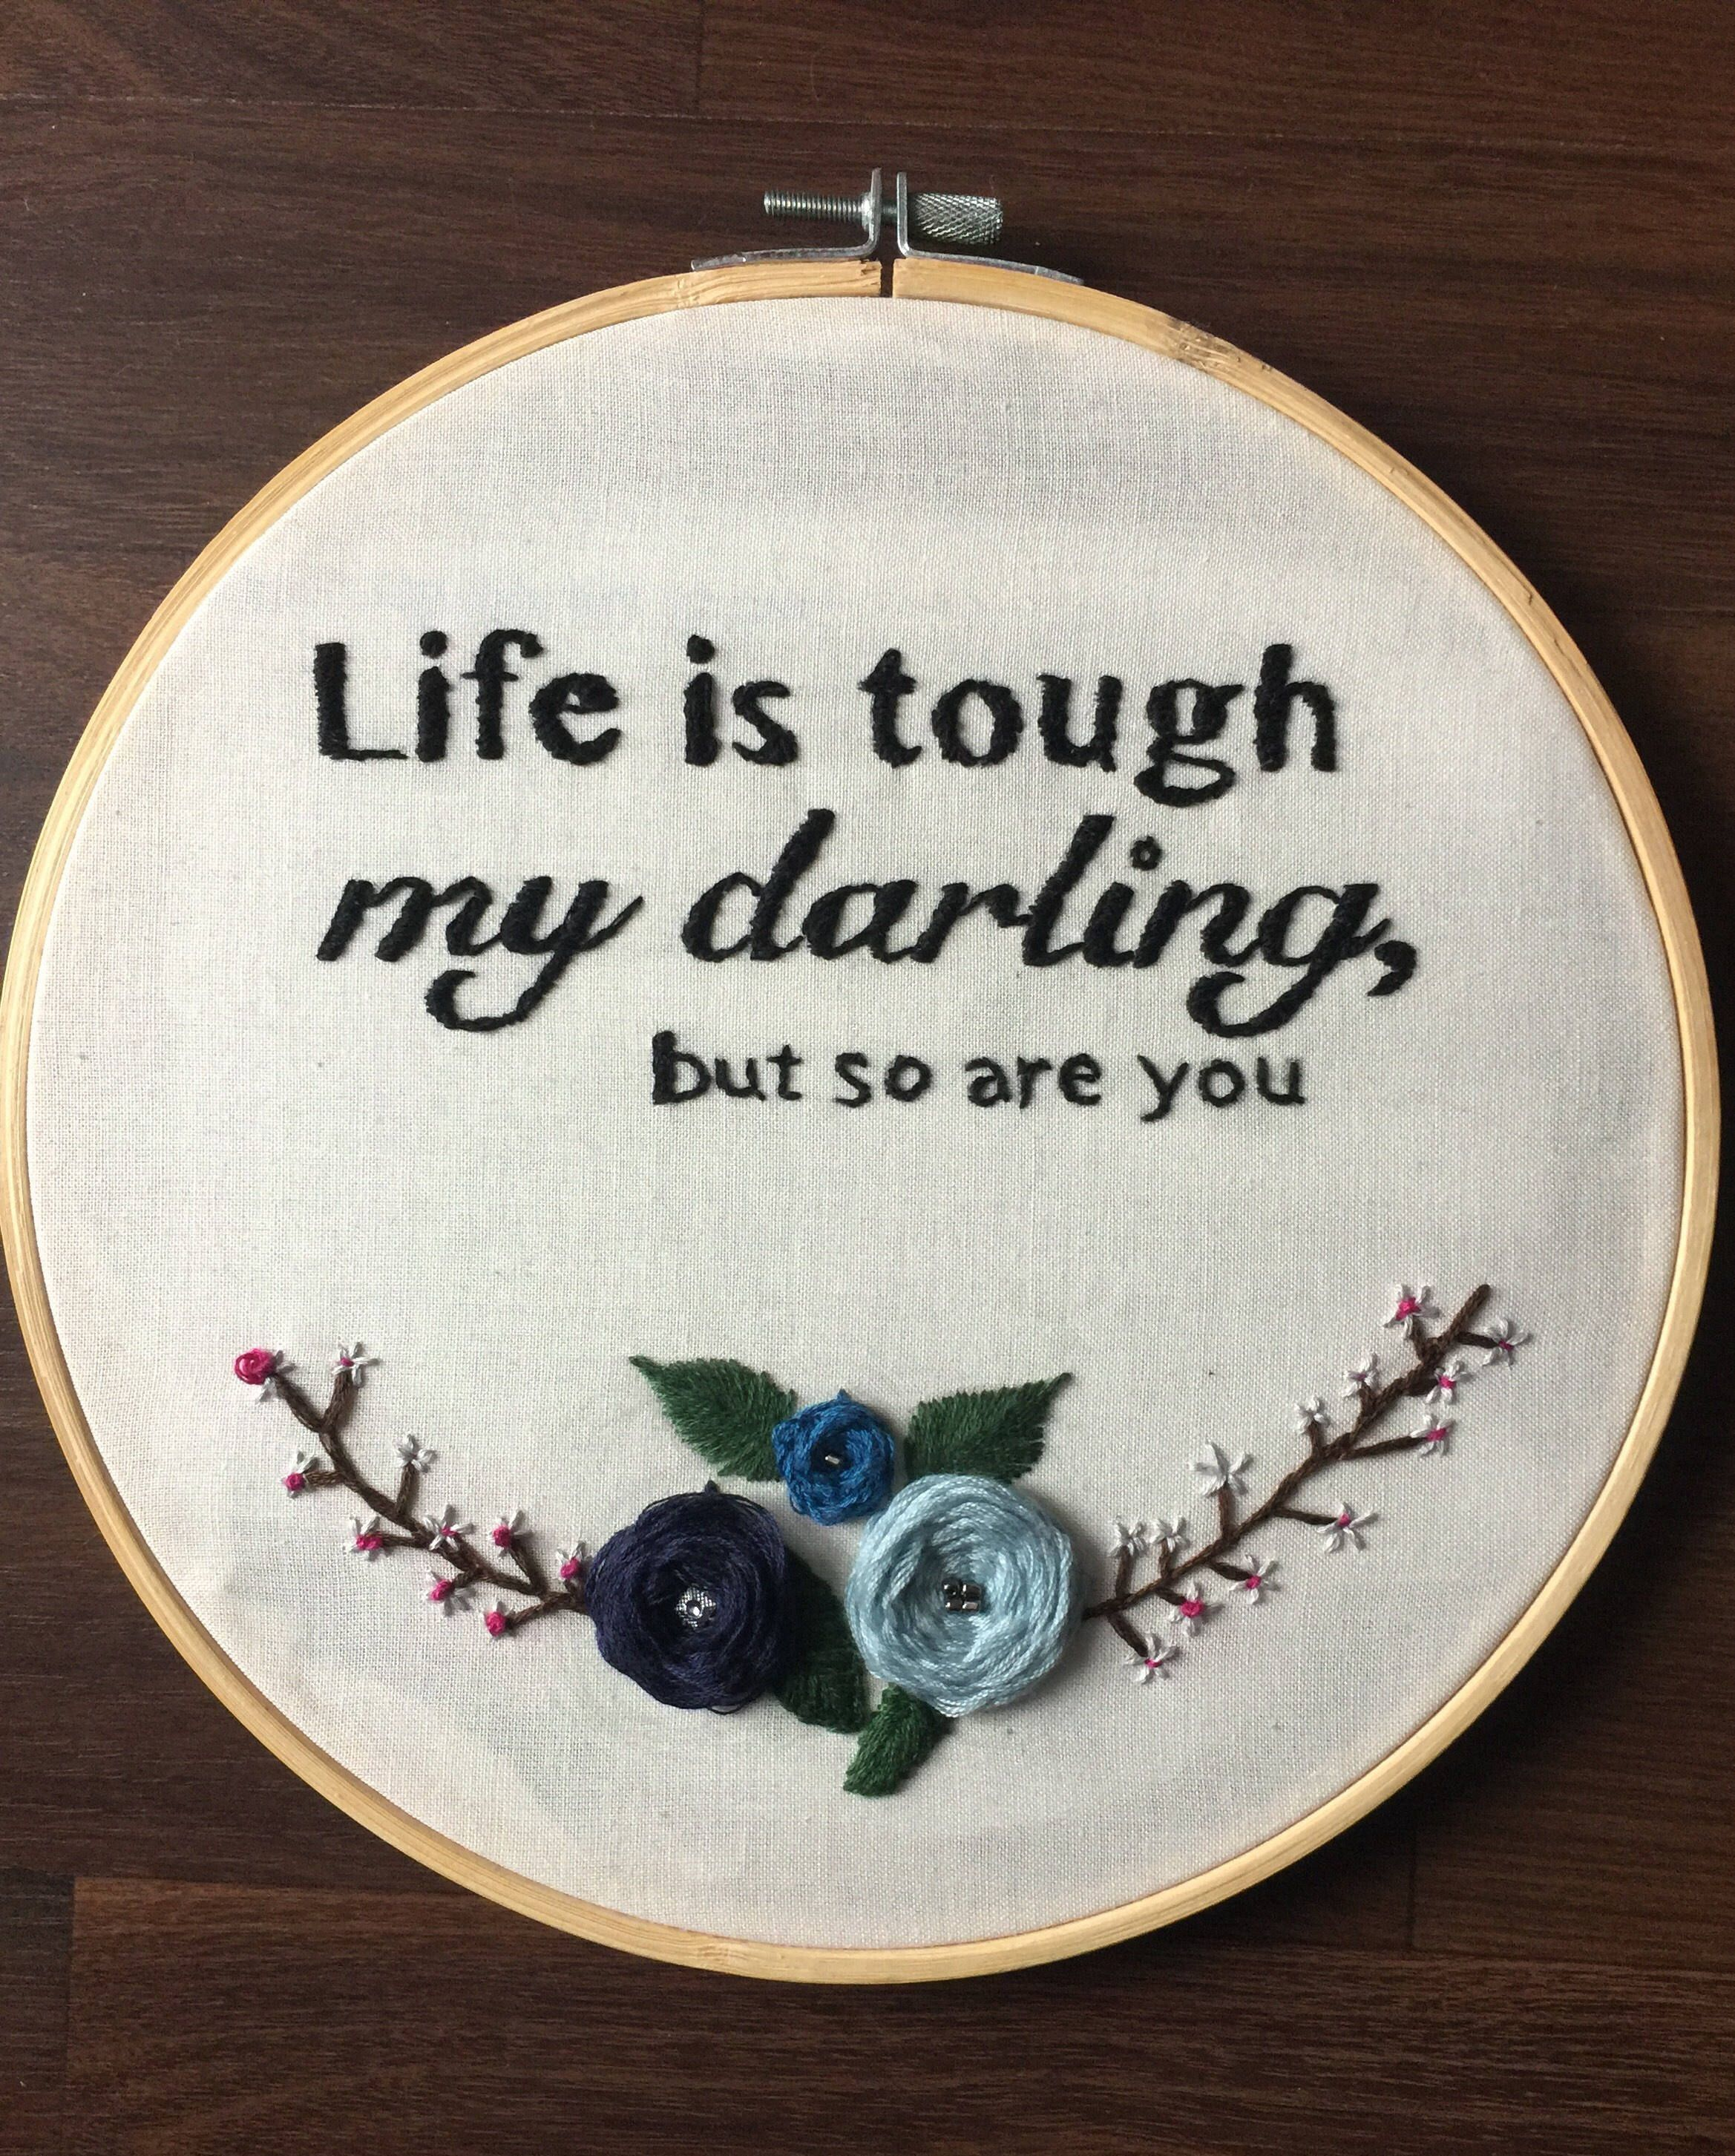 Excited to share the latest addition to my etsy shop life is tough